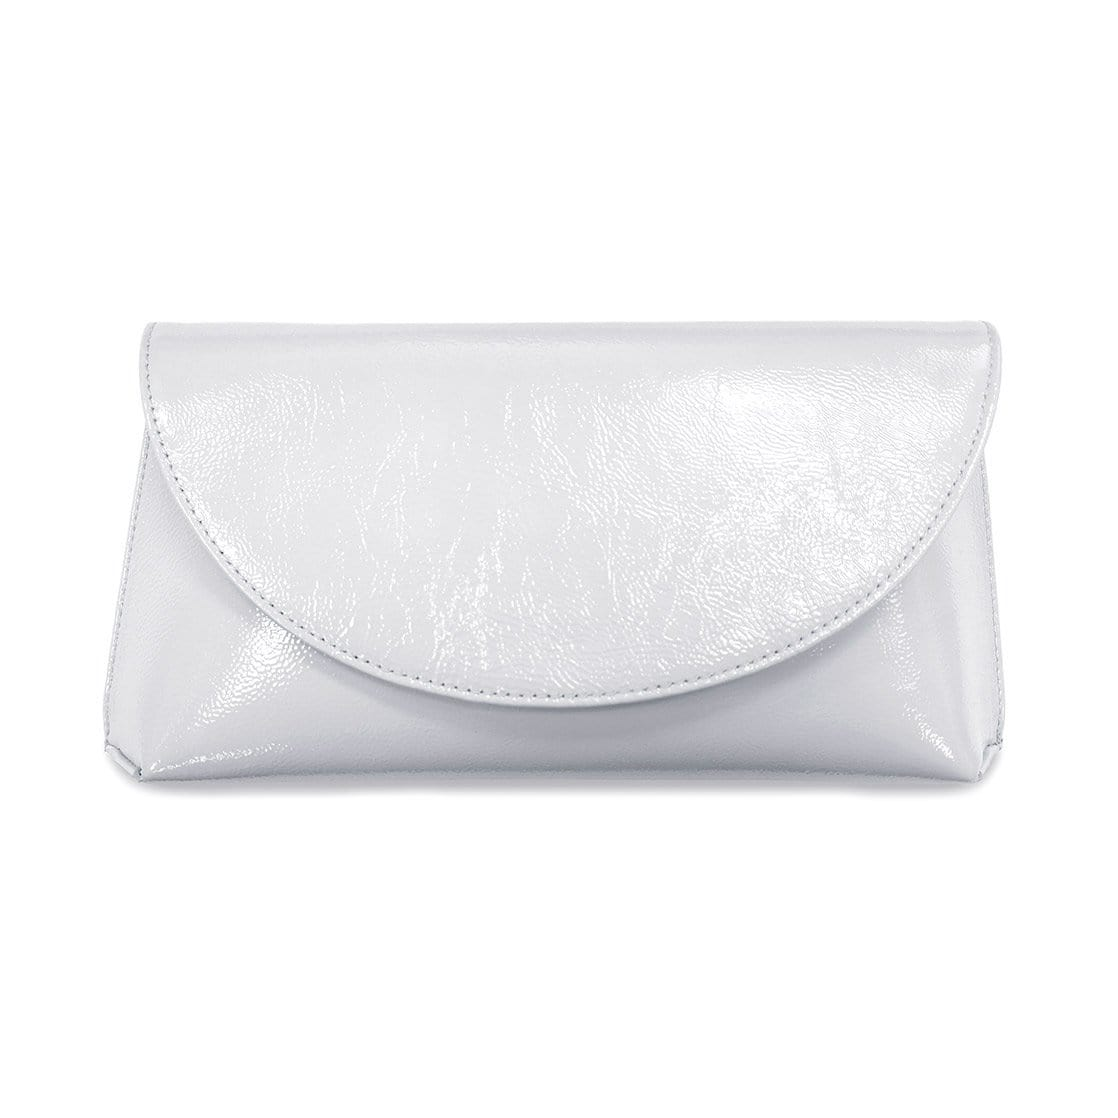 Pale Gray Patent Leather Clutch